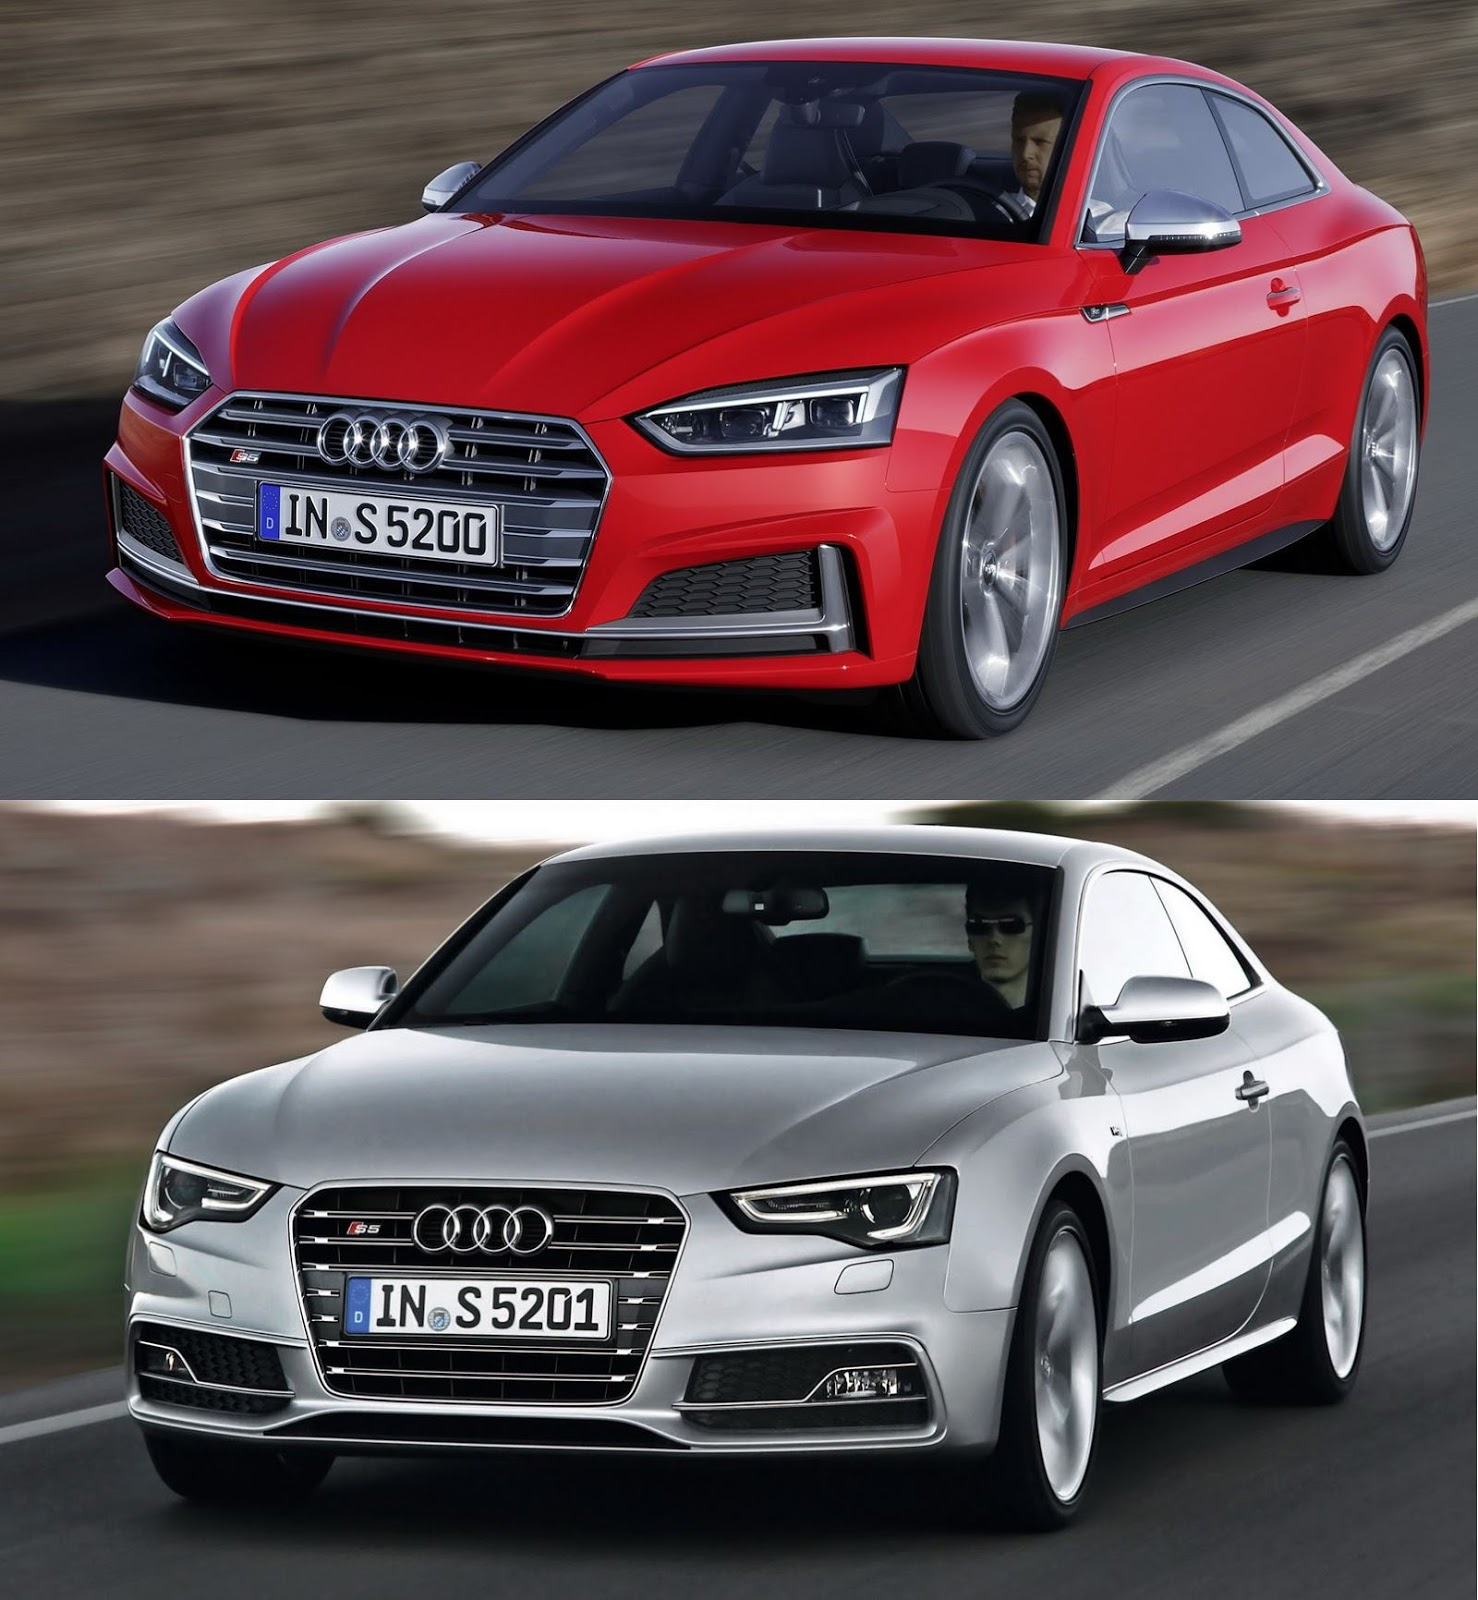 New Audi A5 And S5 Coupe Unveiled With Sleek Looks